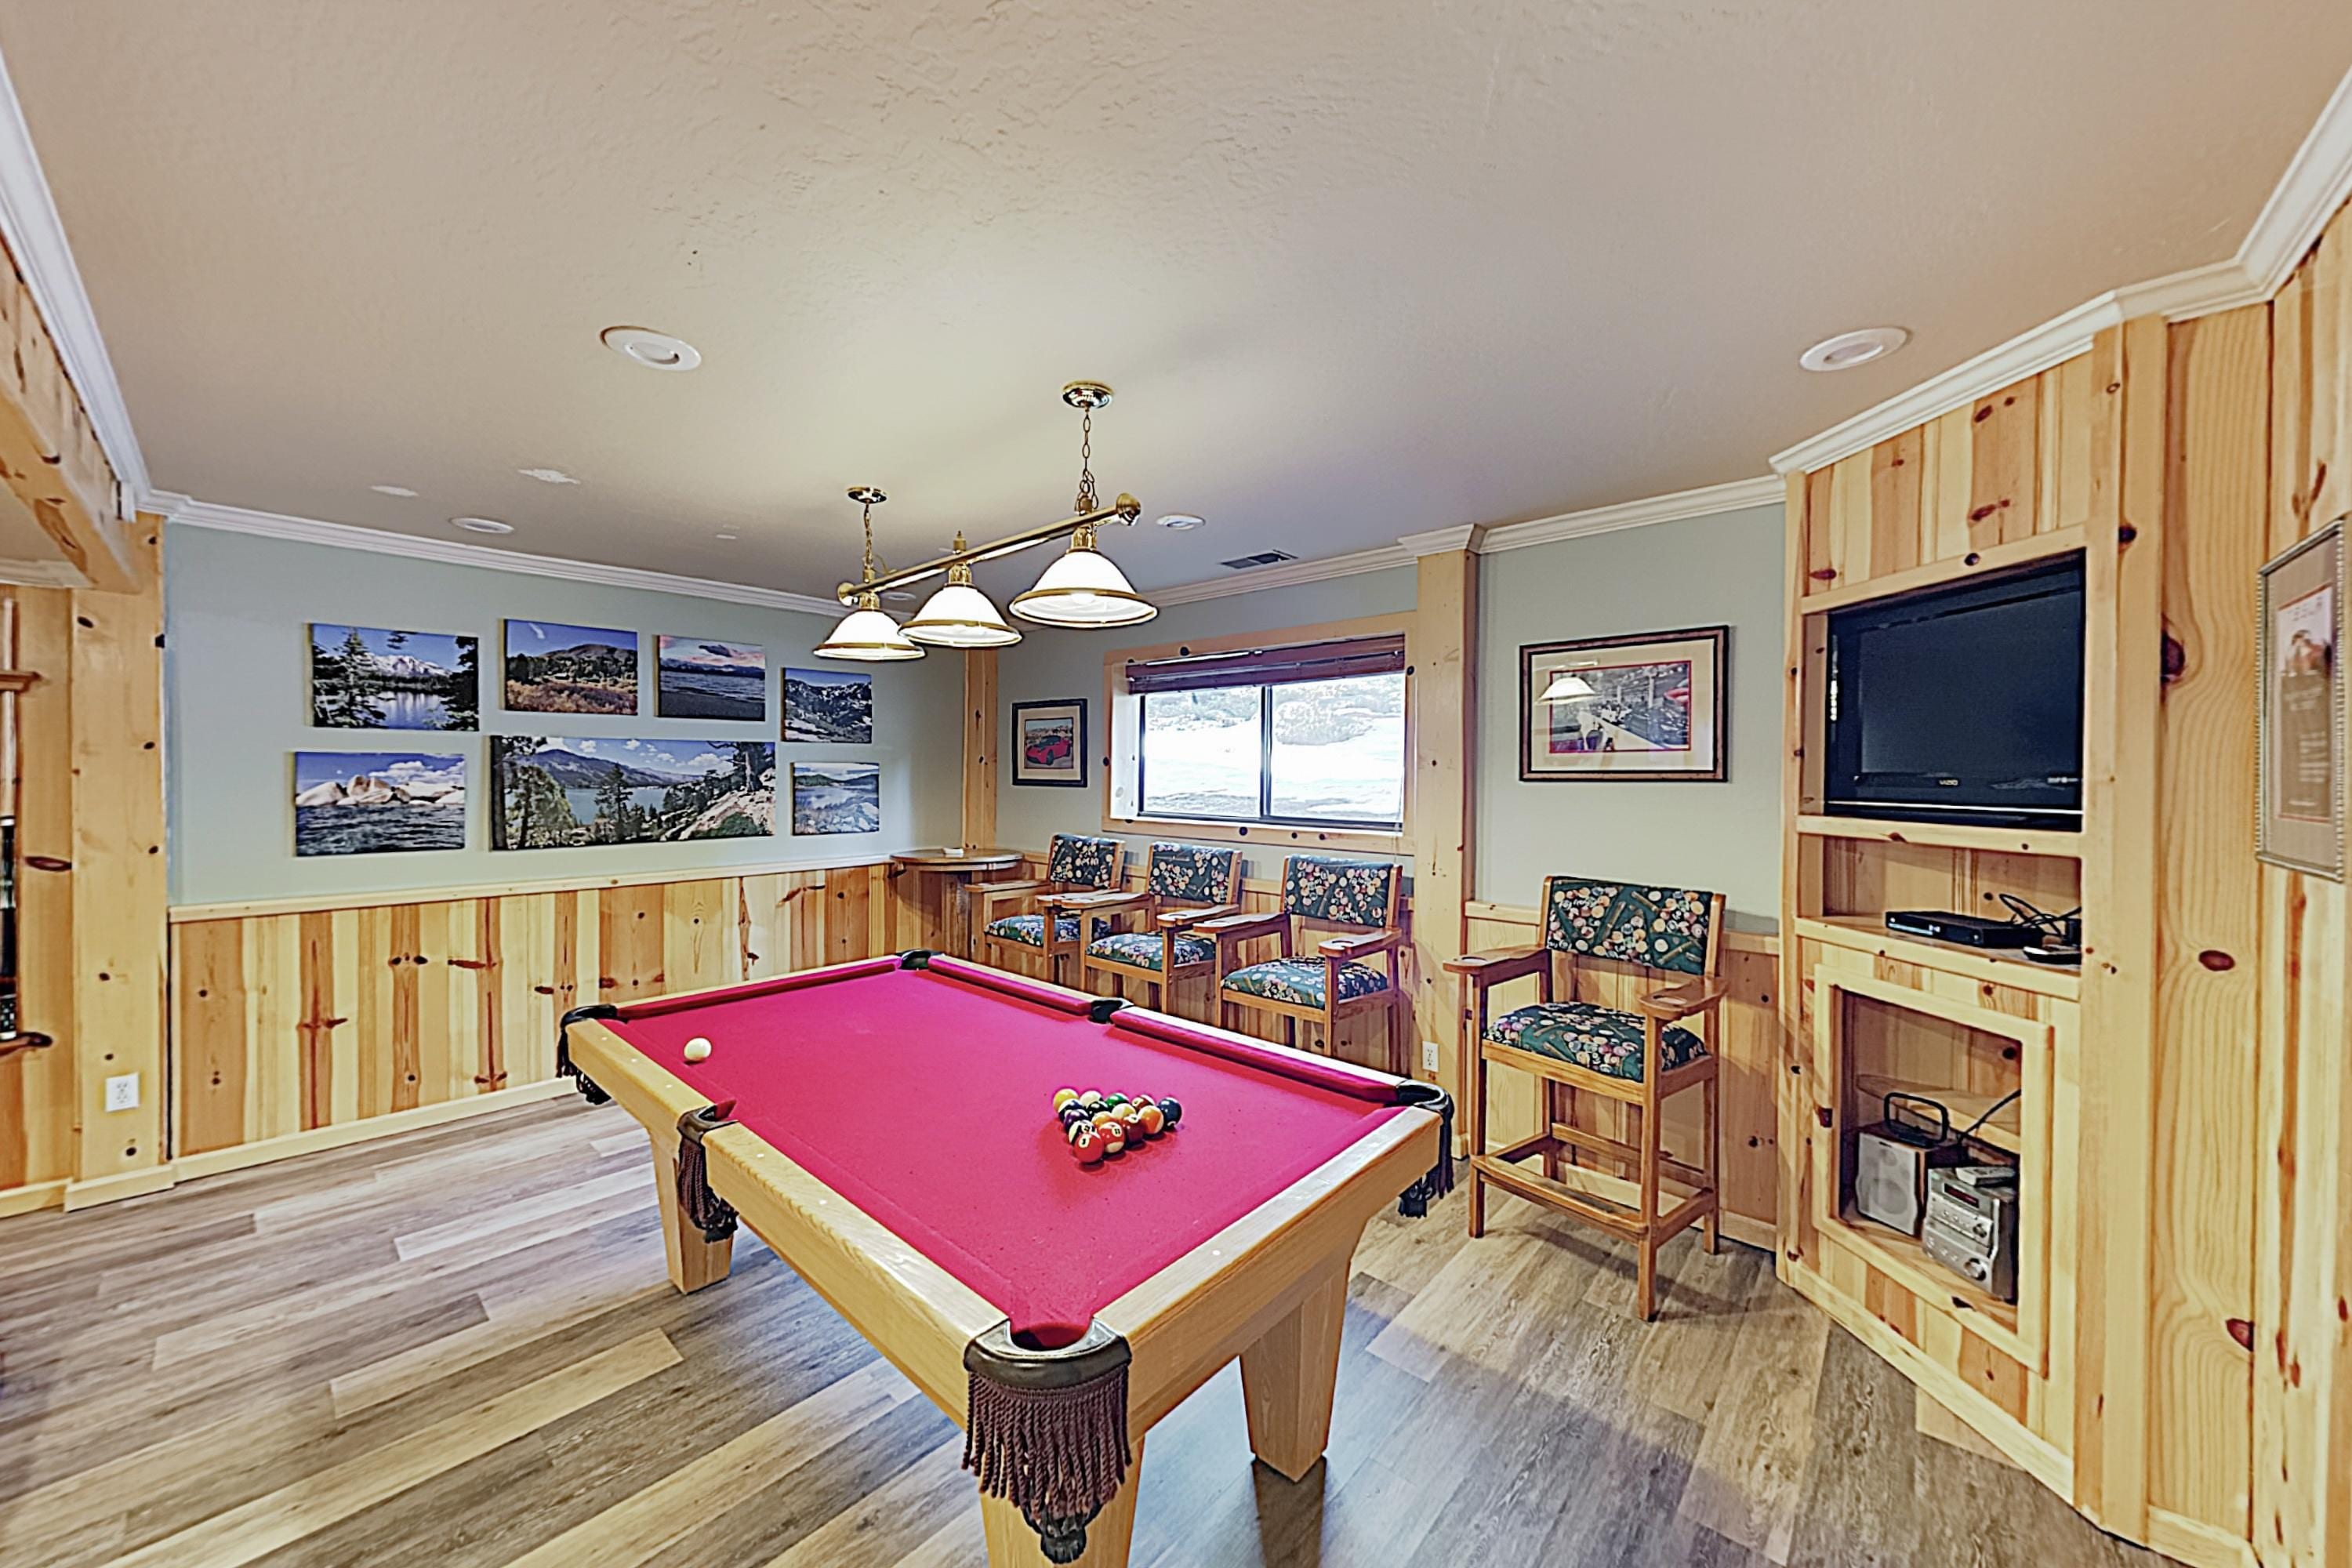 Hold lively pool tournaments in the billiards room!